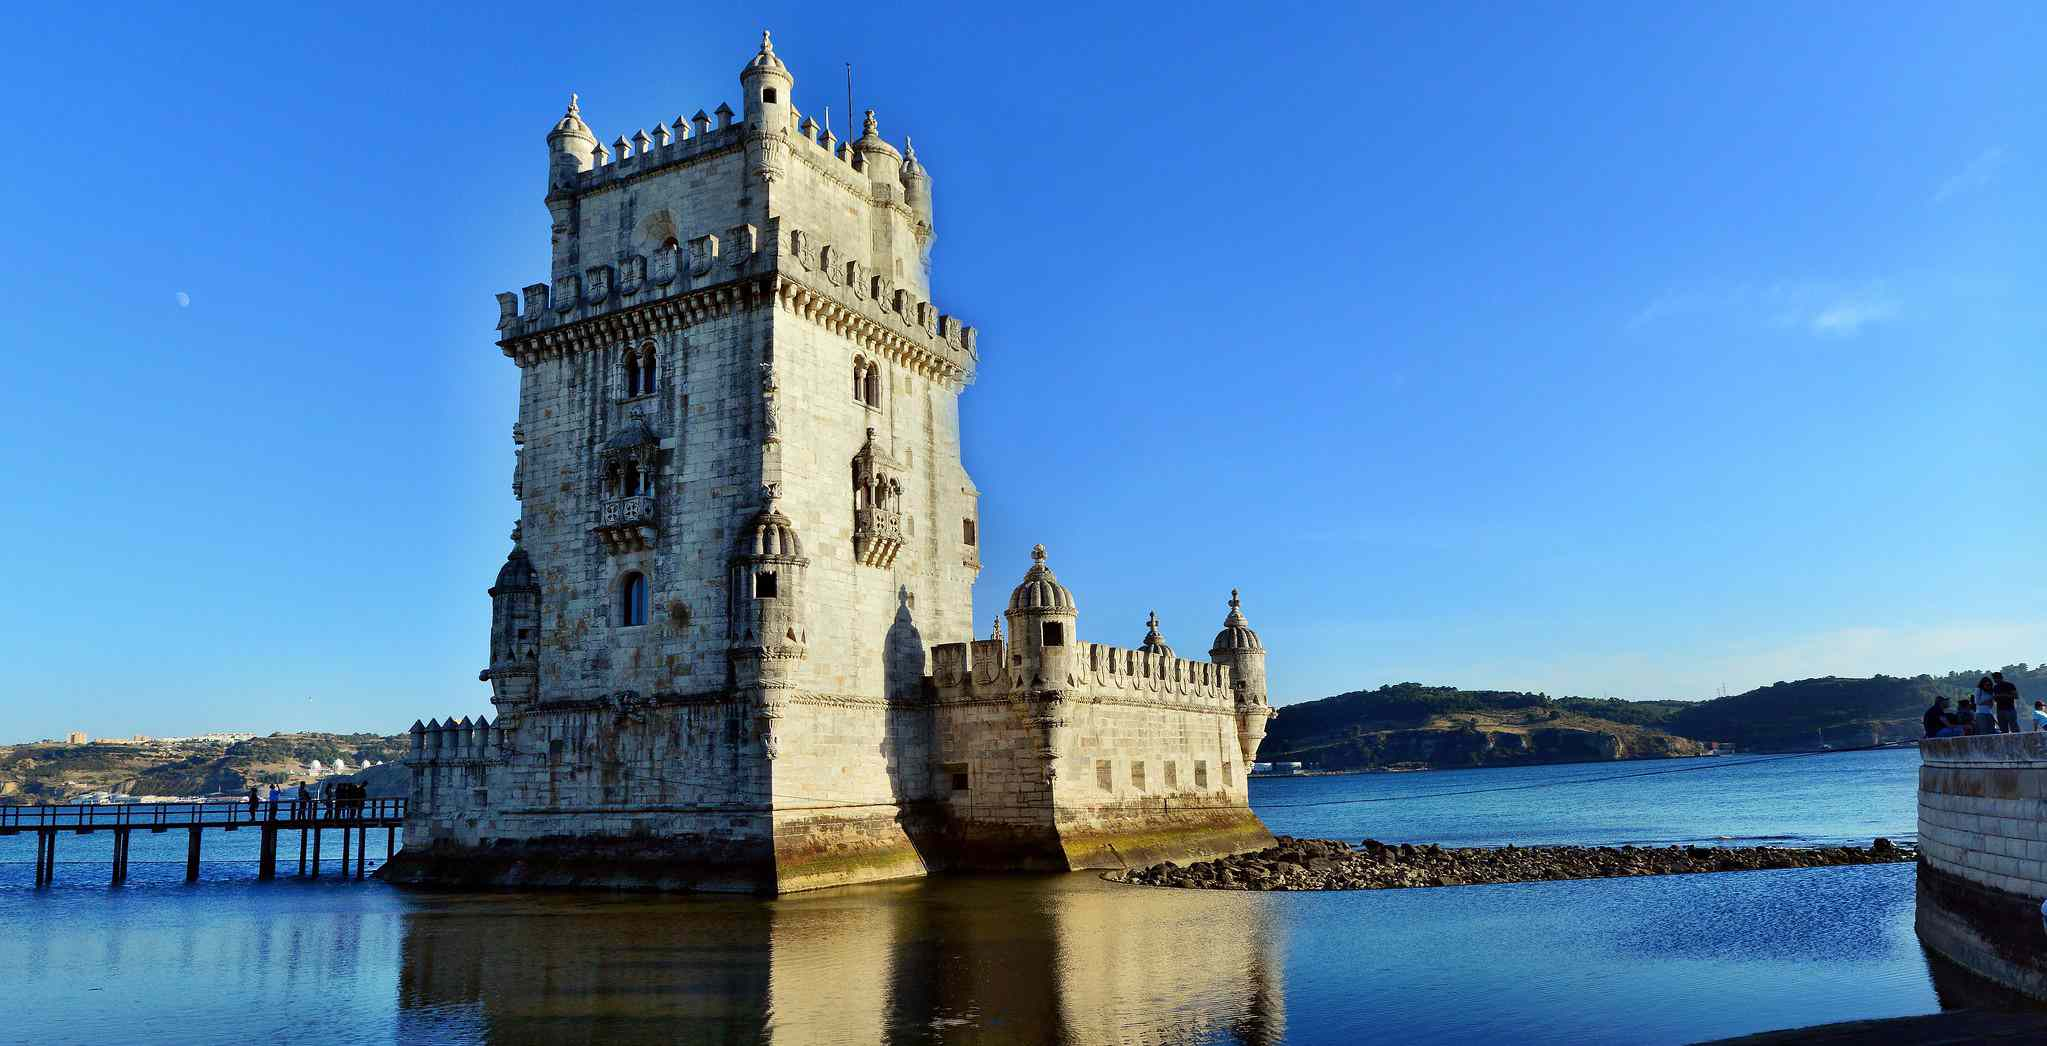 Belem Tower, on the banks of the Tangus River, under a clear blue sky